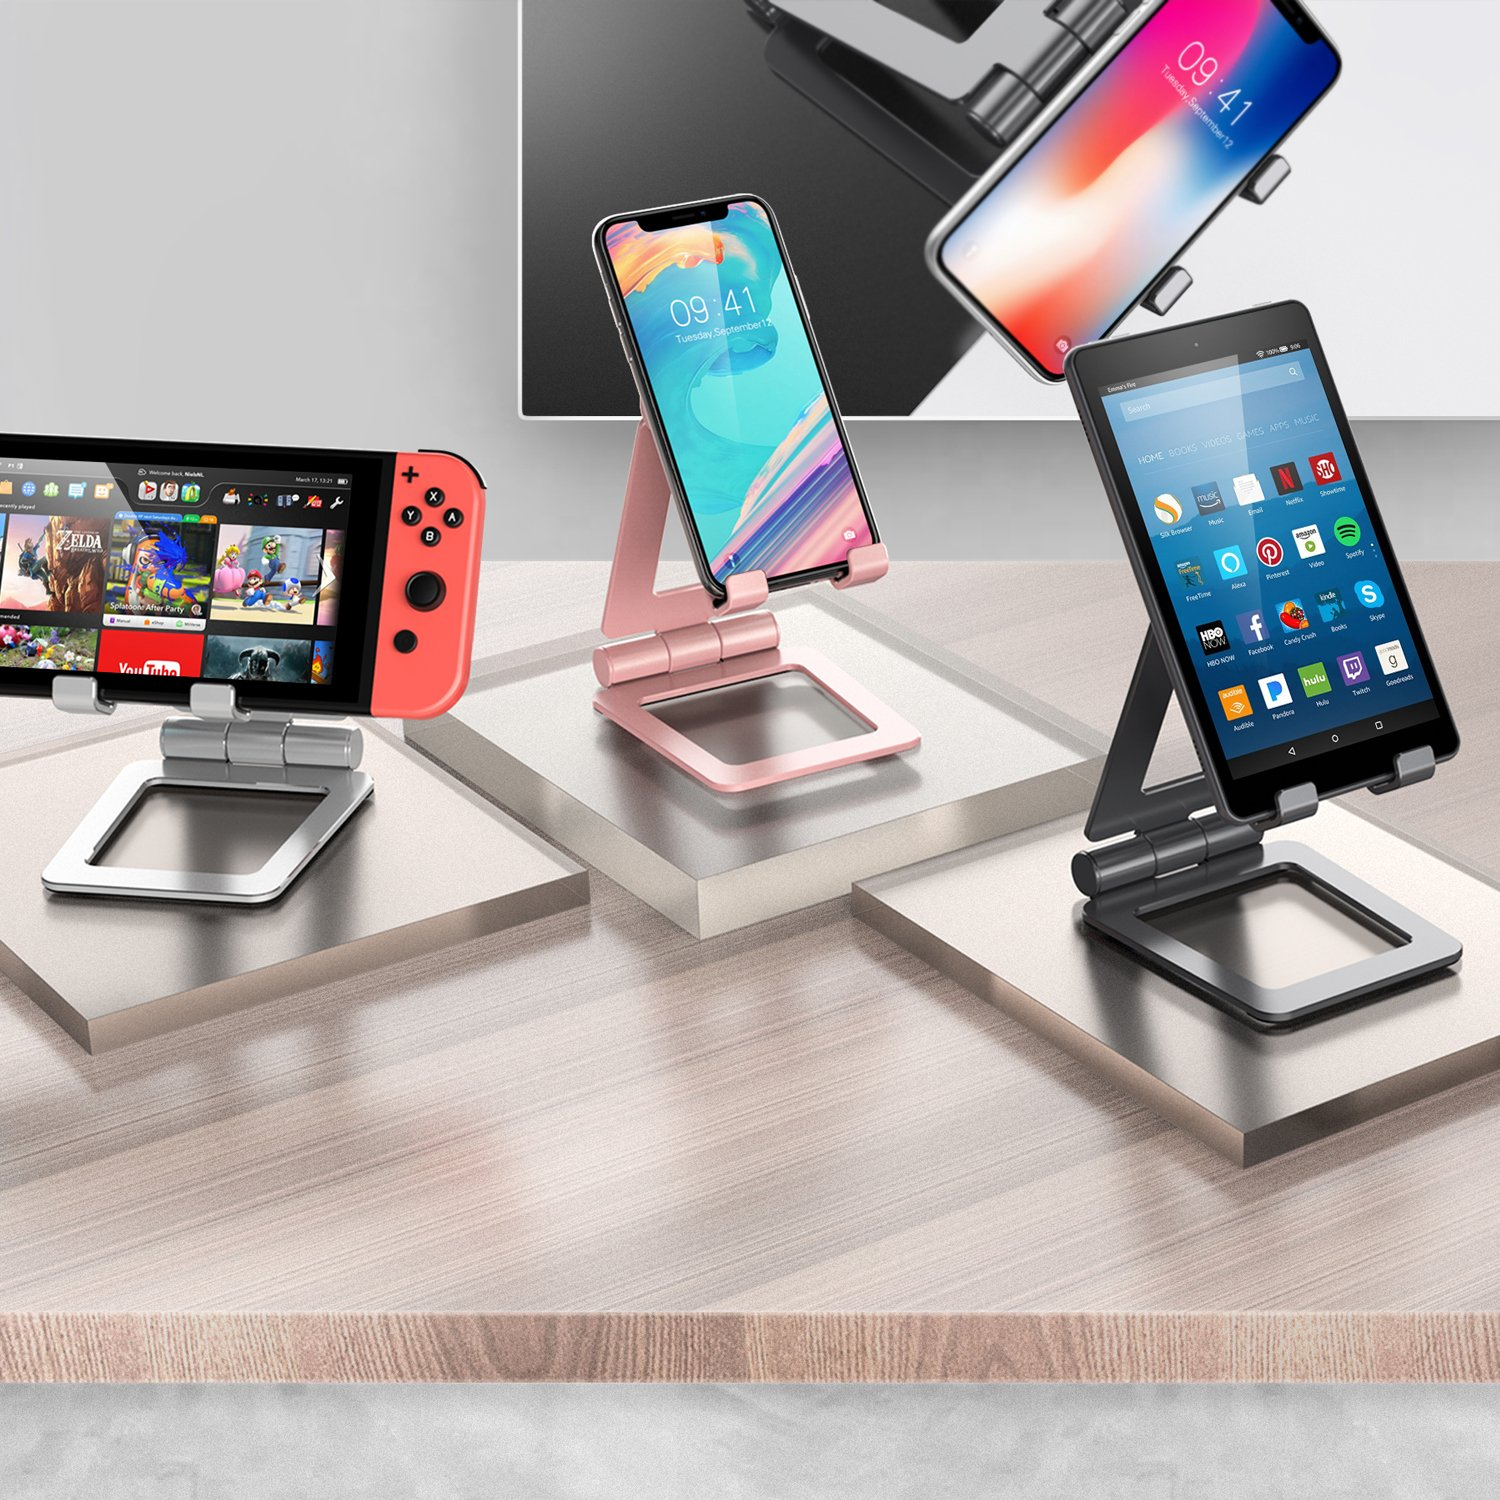 Adjustable iPad Stand, Tablet Stand Holders, Cell Phone Stands, iPhone Stand, Nintendo Switch Stand, iPad Pro Stand, iPad Mini Stands and Holders for Desk (4-13 inch) by Hi-Tech Wireless (Image #2)